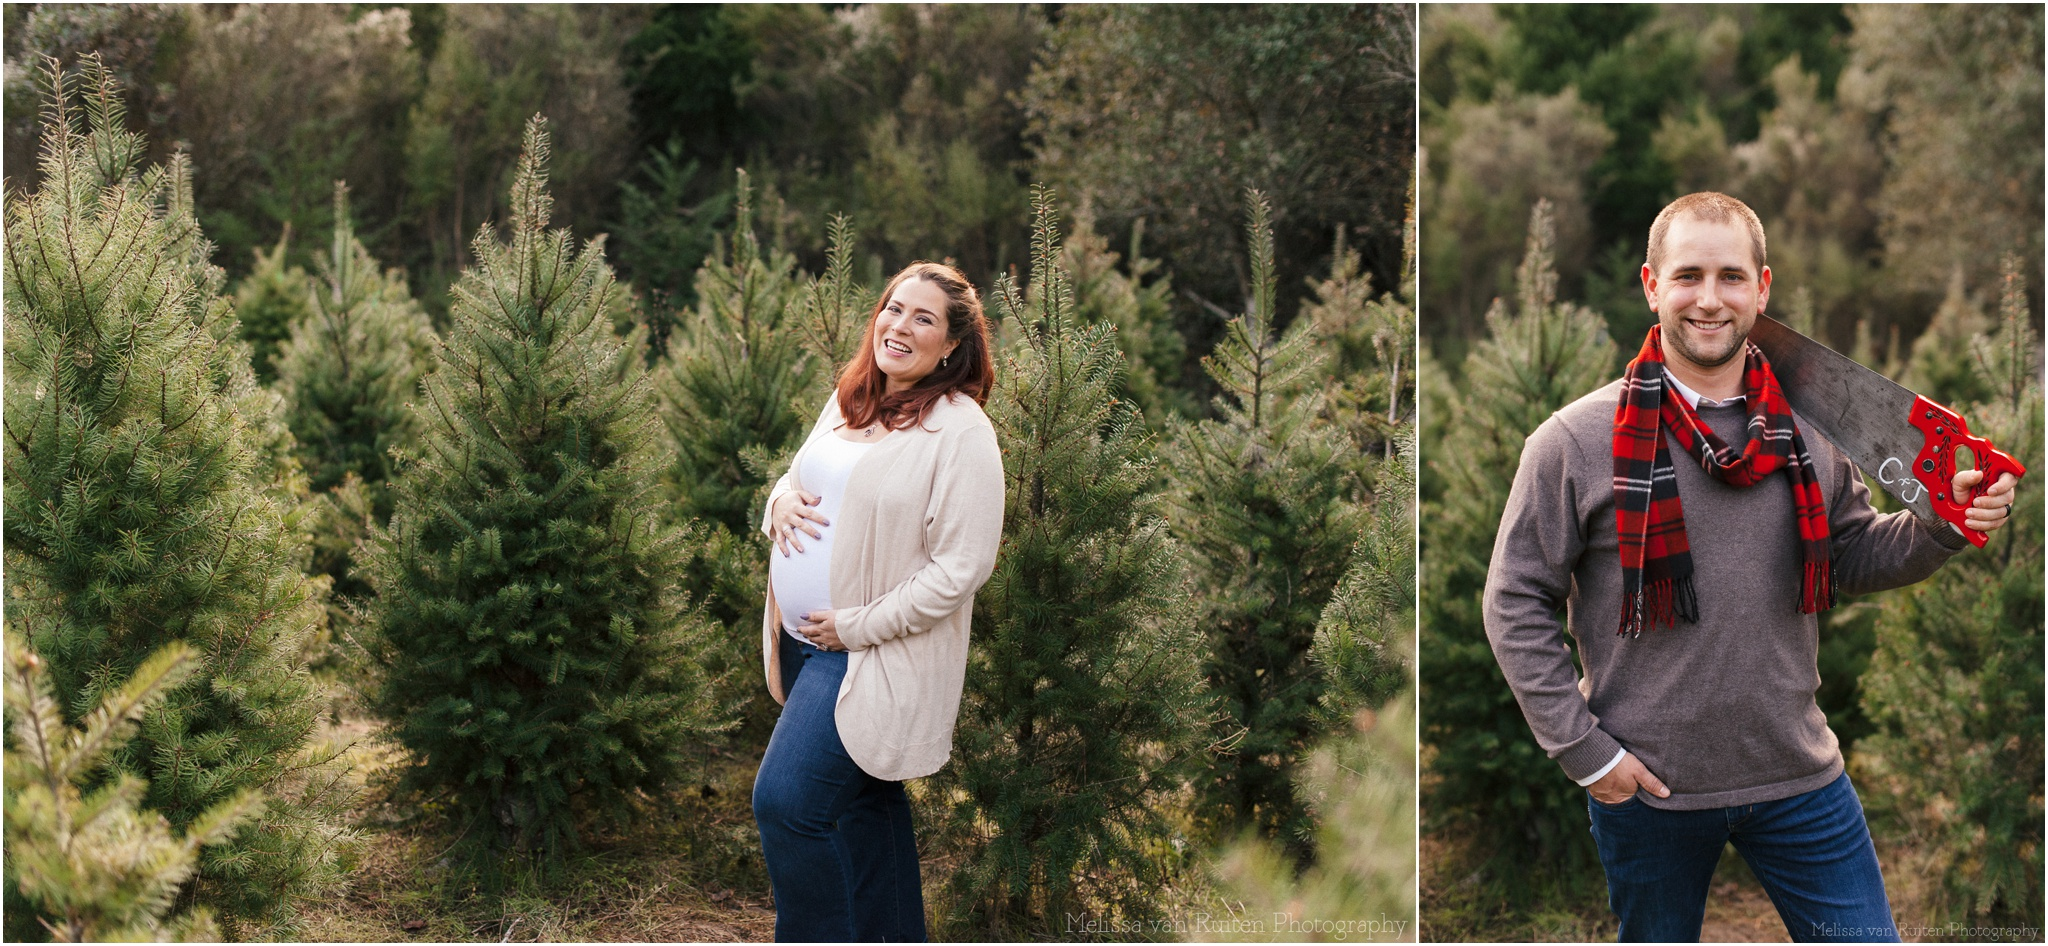 San Francisco Bay Area lifestyle maternity photography